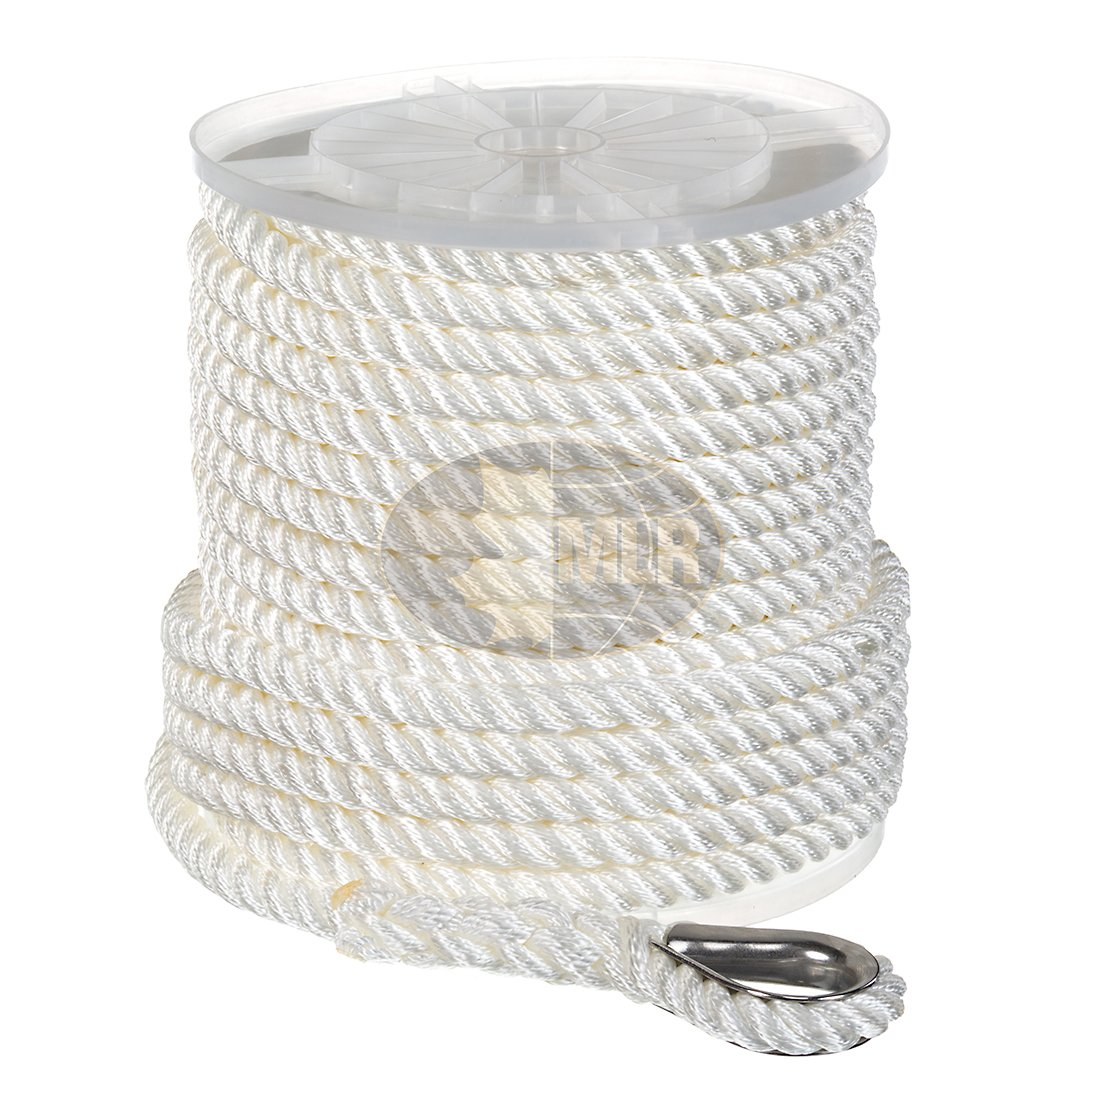 Nylon 3 Strand Anchor/Rigging Line 1/2'' x 50' White by Maple Leaf Ropes